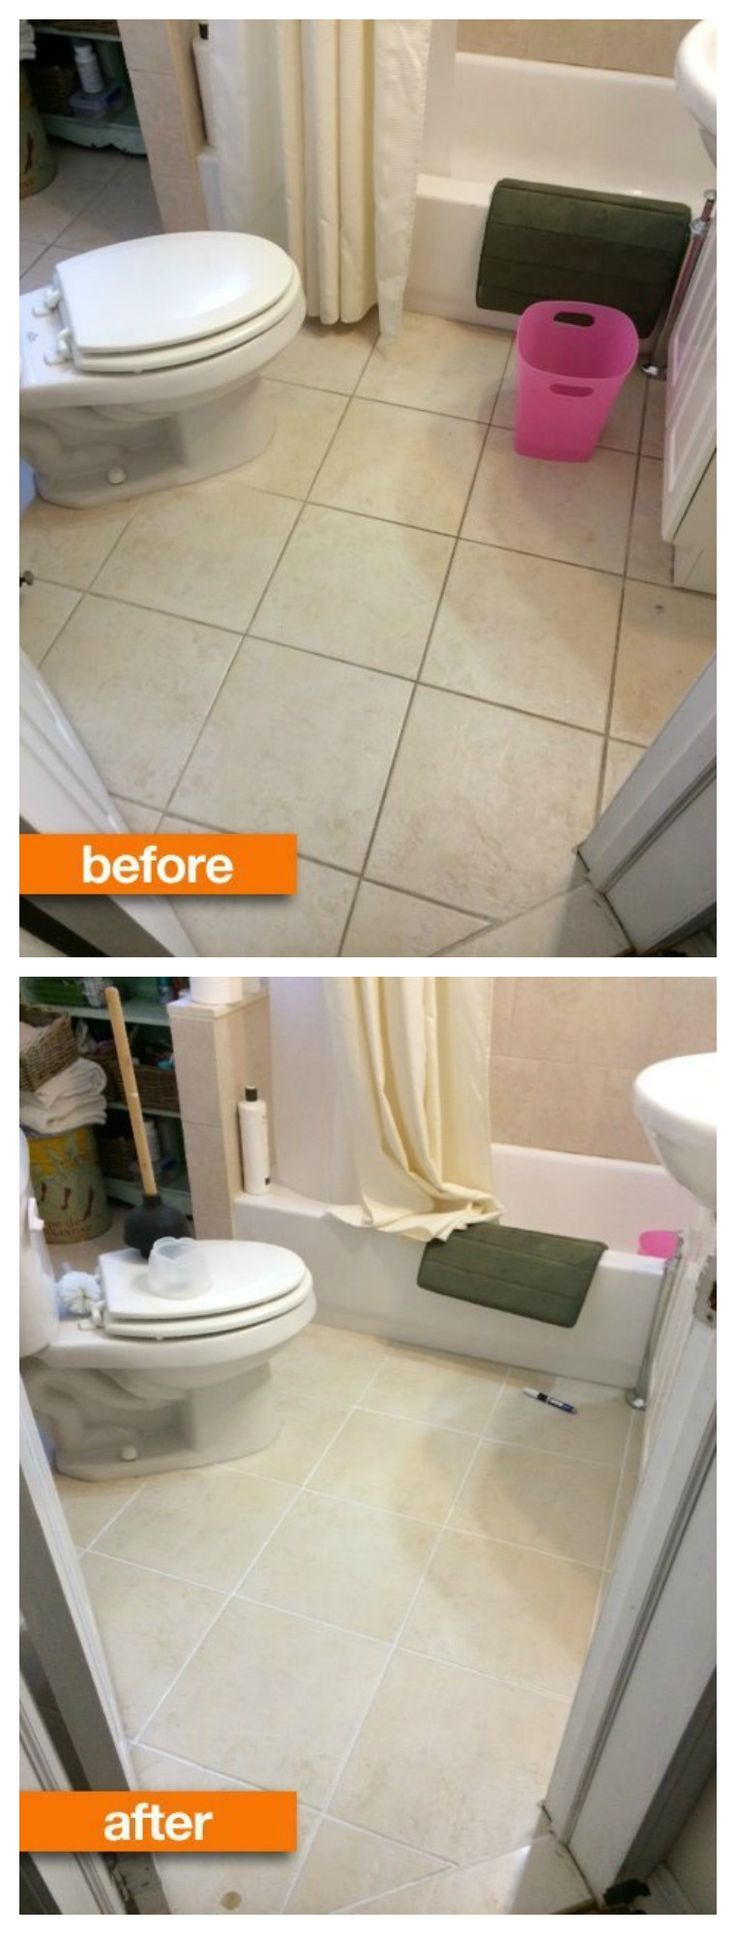 For Cleaning And Restoring Grout, Miracle Grout Pen Is One Of Our Absolute  Favorite Tools